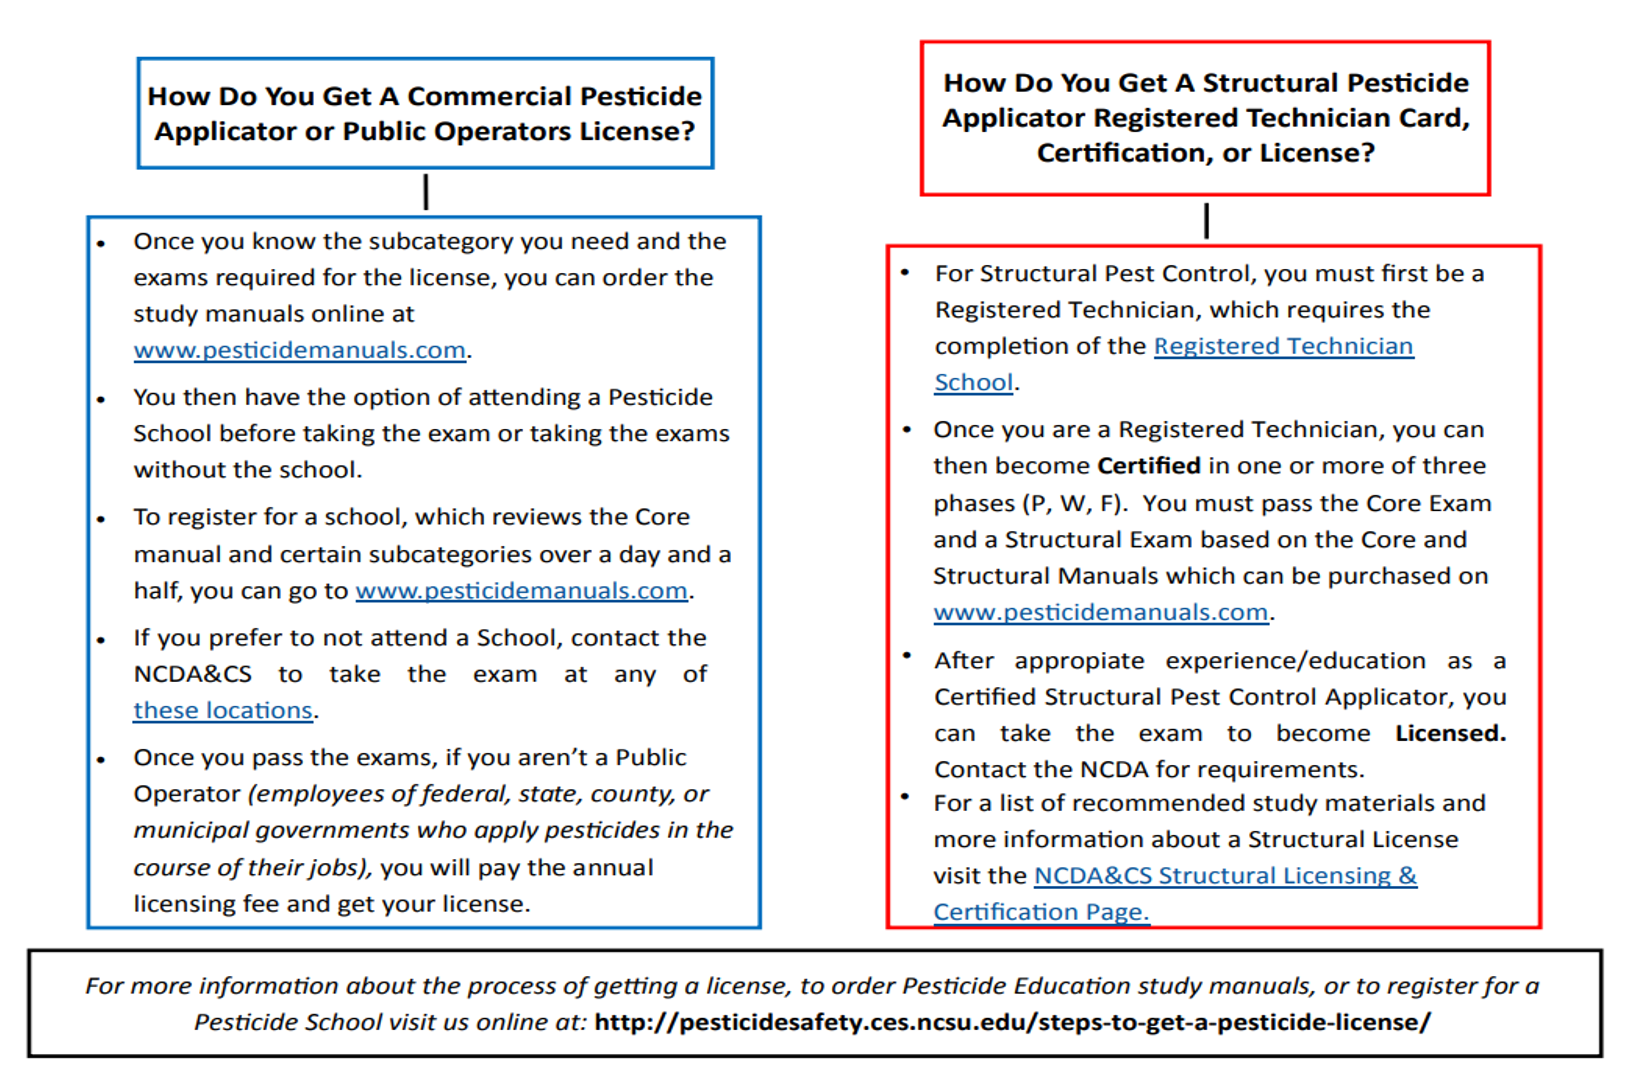 License or Certificate flowchart page 2